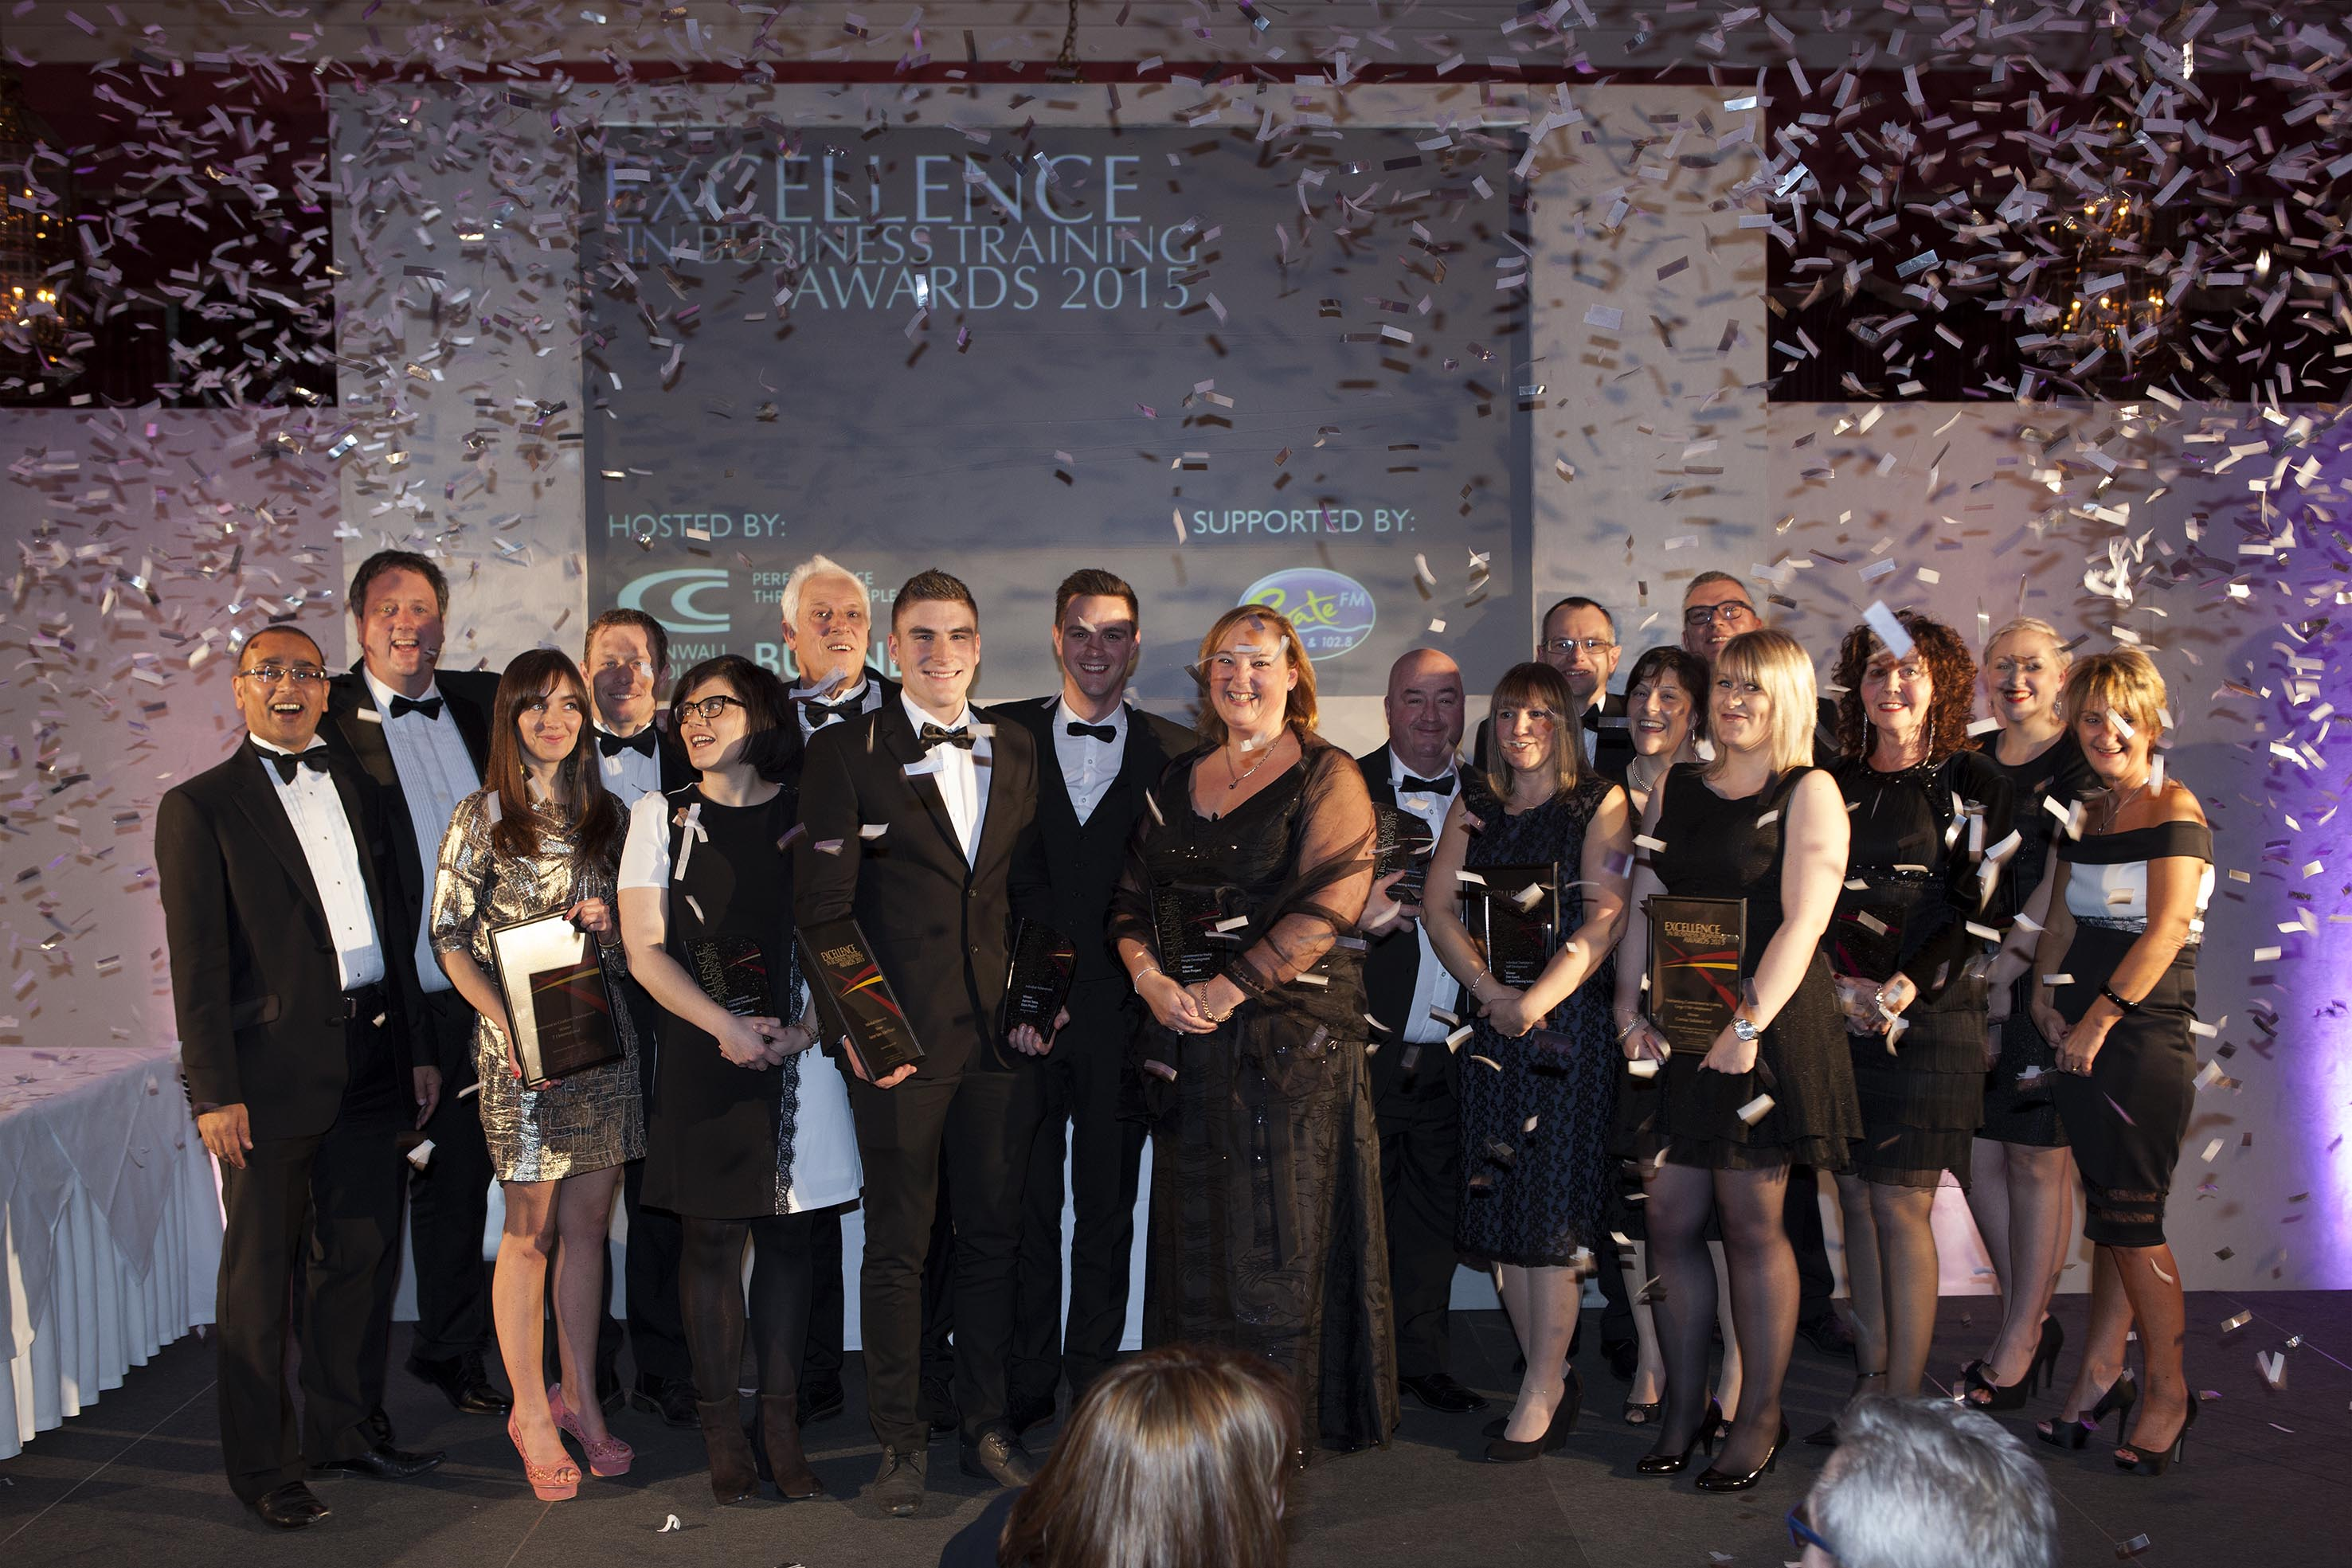 Winners of last year's Excellence in Business Training Awards